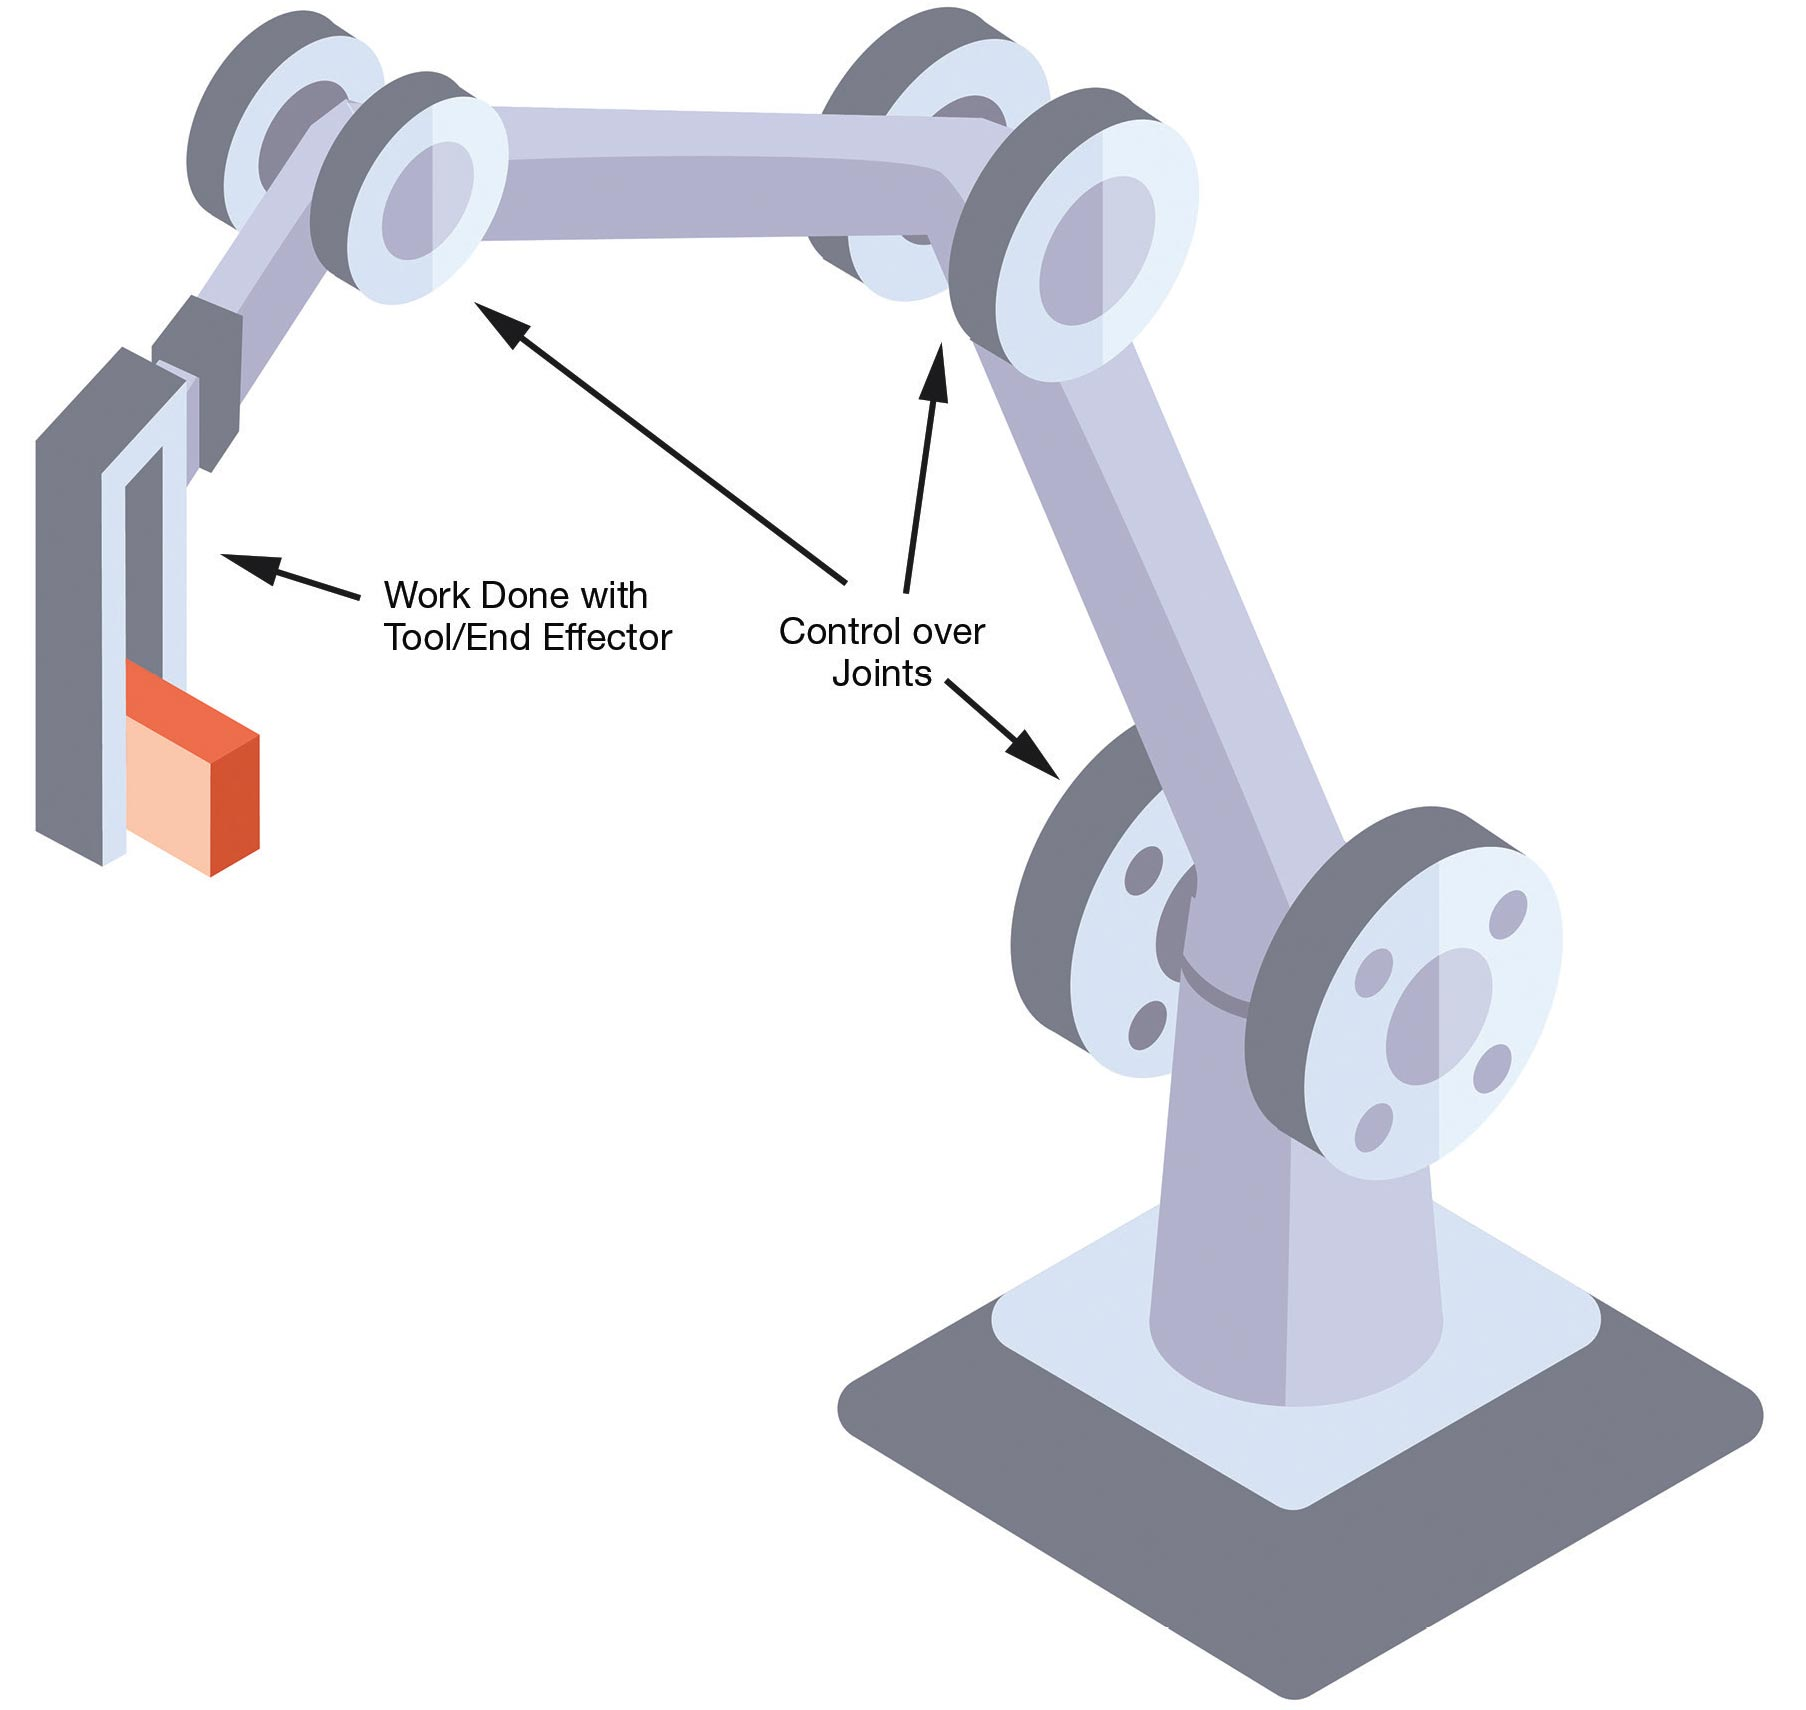 The motion control problem involves how the joints are moved to achieve desired motion of the tool (or end effector). Courtesy of Energid Technologies Corp.